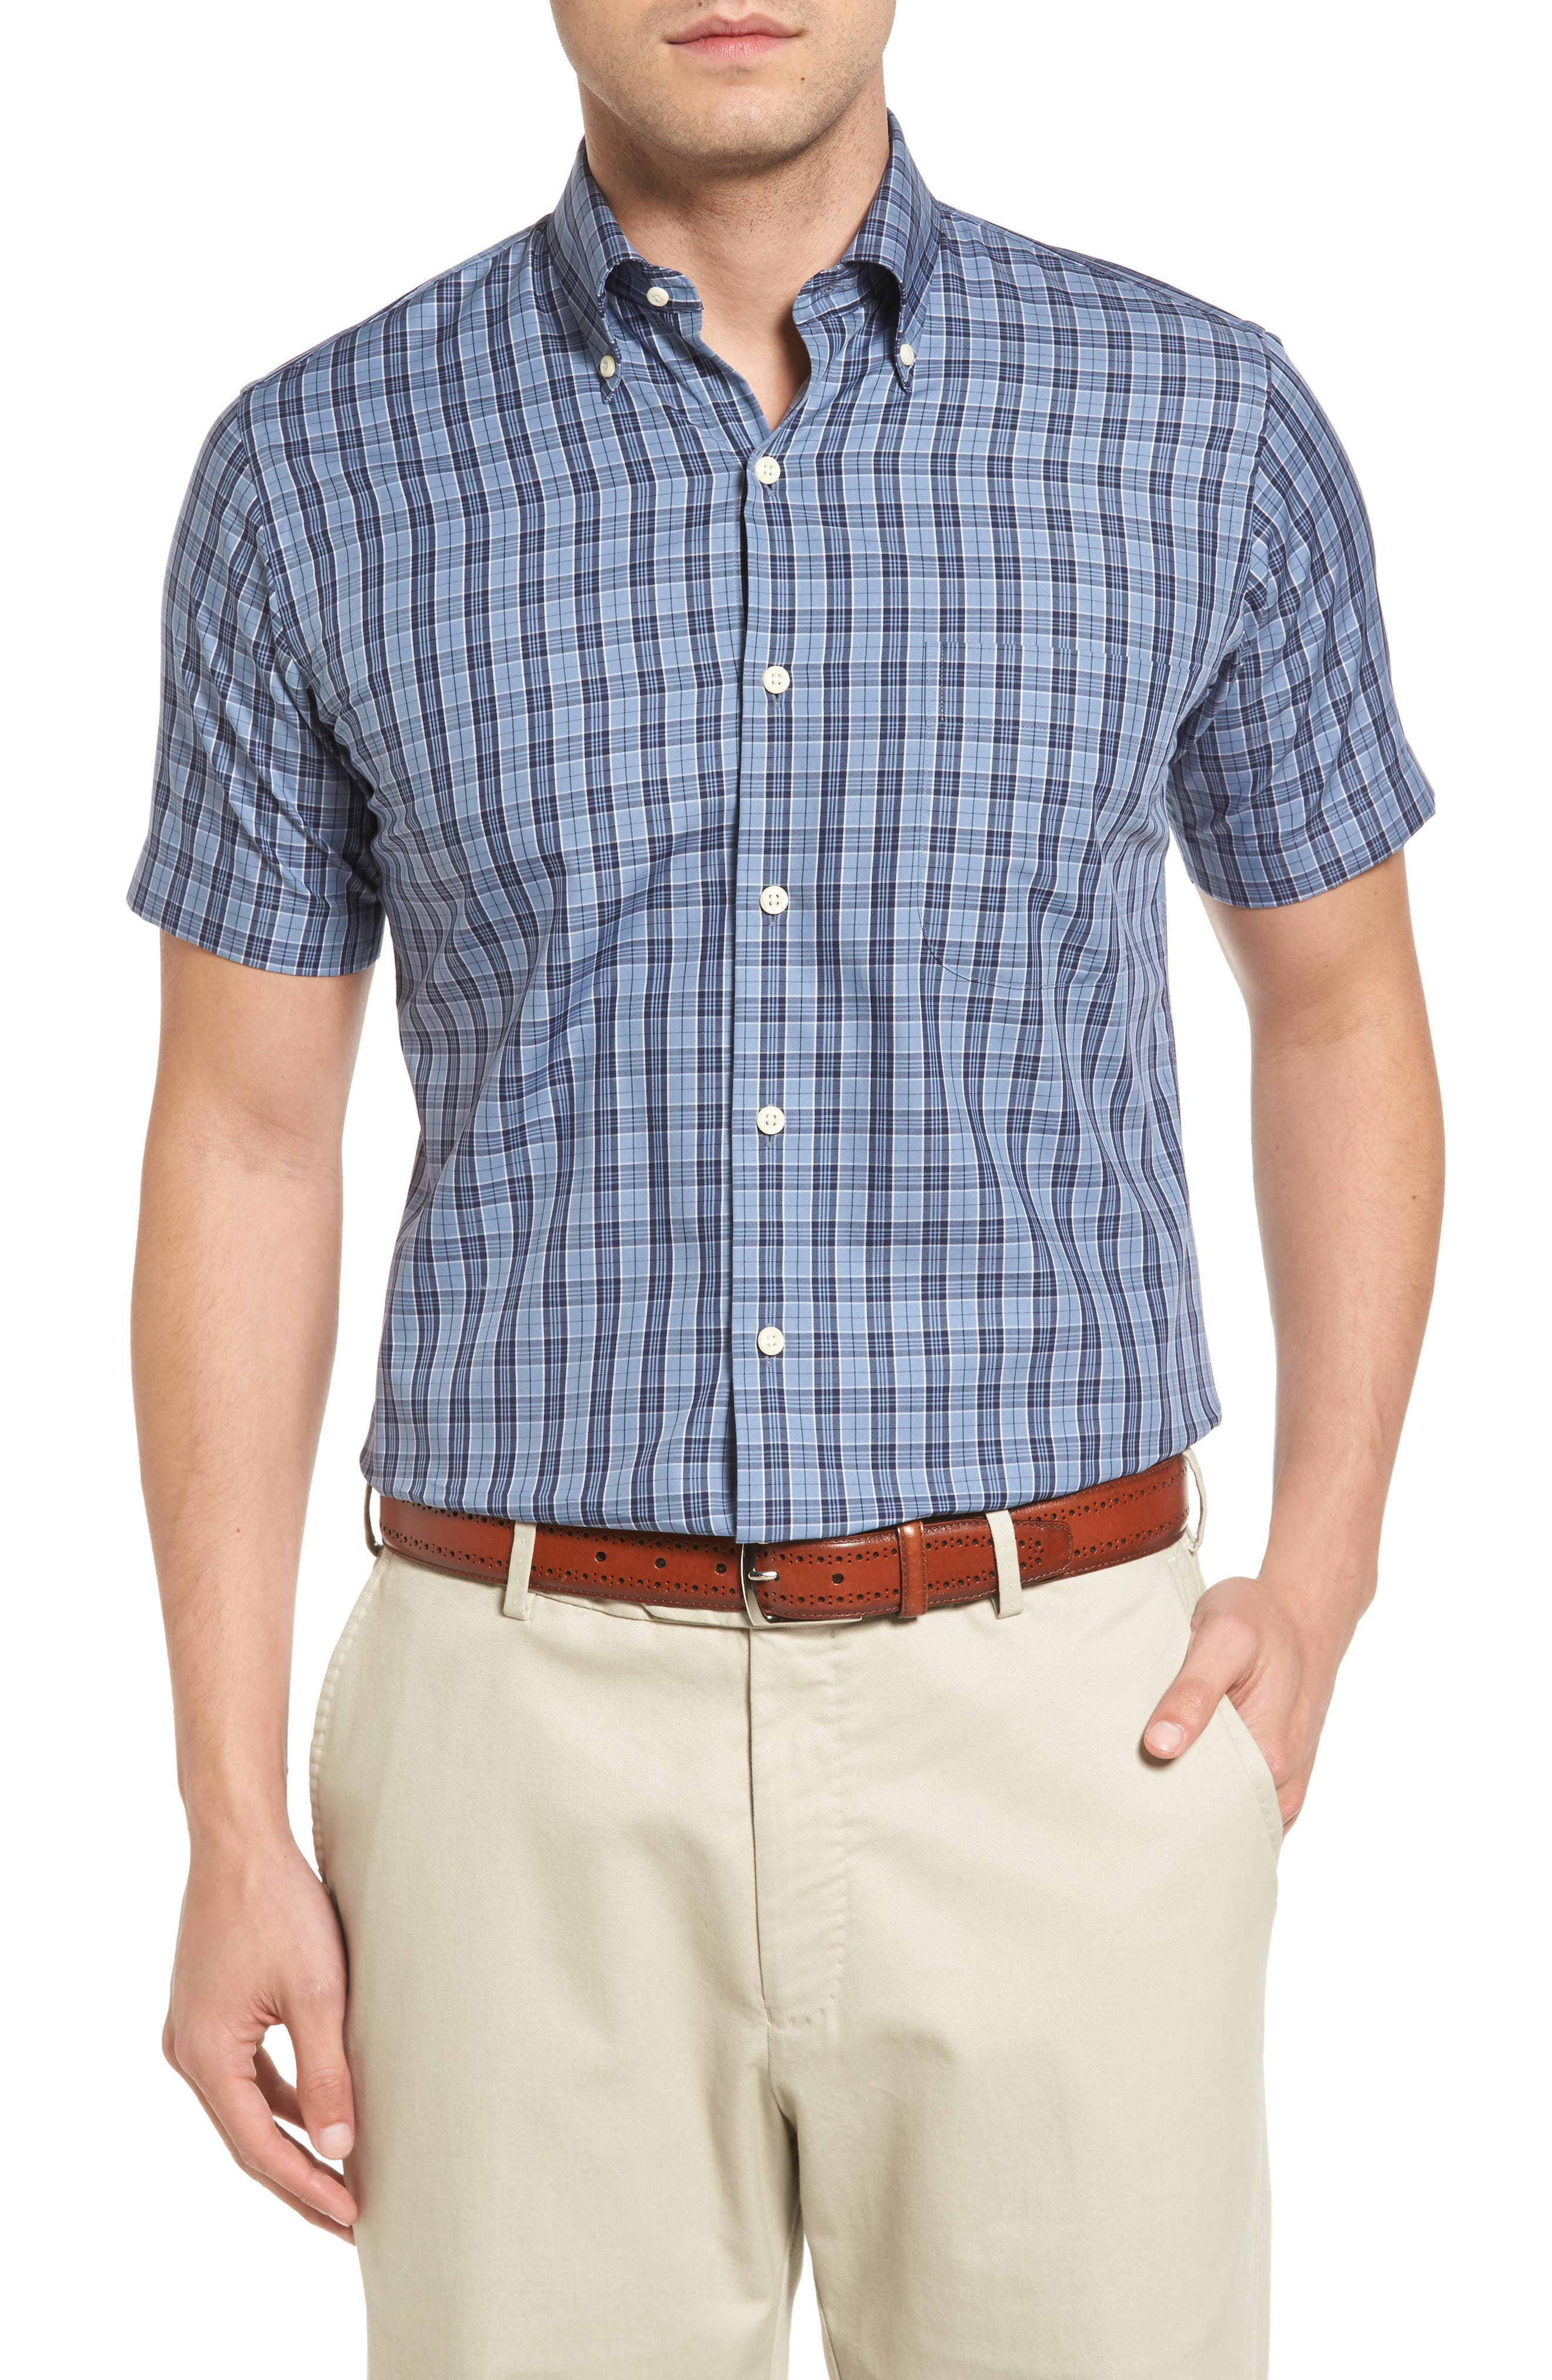 Regular Fit Short Sleeve Stormy Plaid Sport Shirt,                             Main thumbnail 1, color,                             439